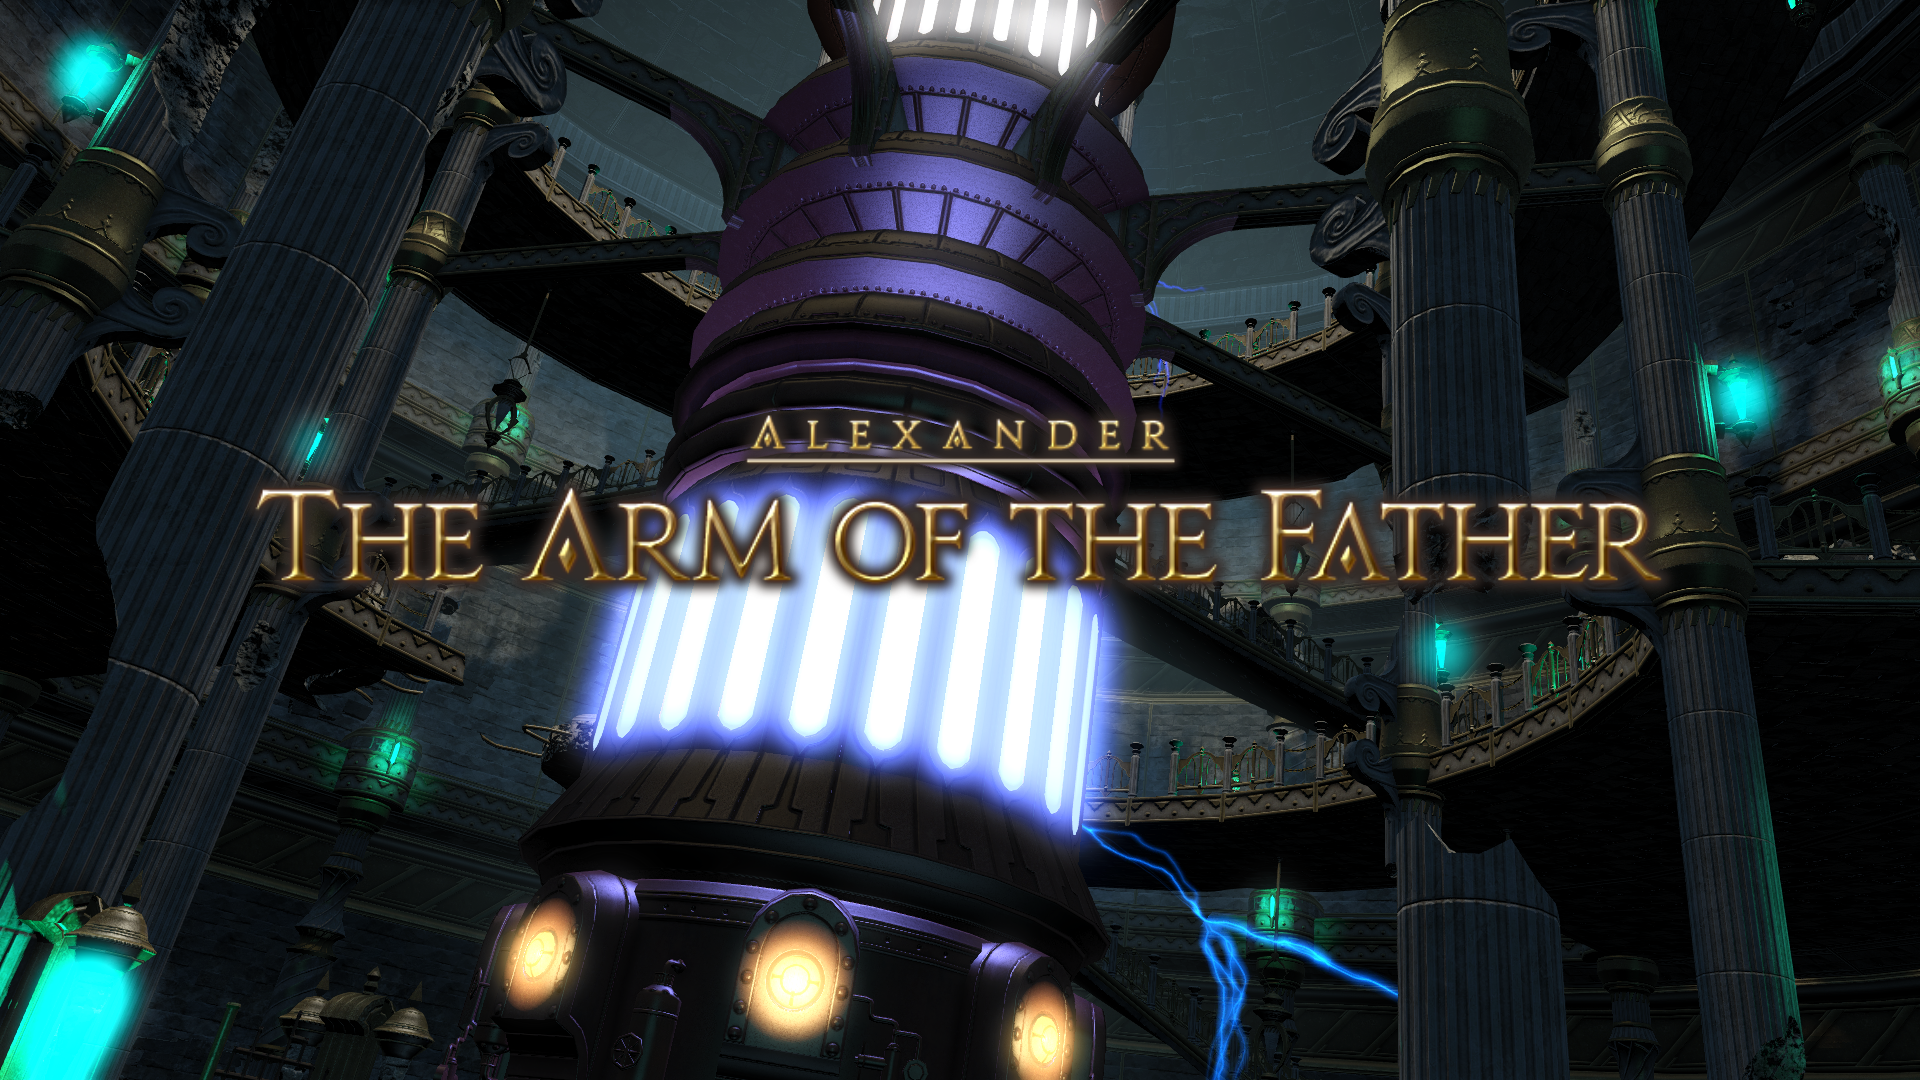 Alexander - The Arm of the Father   Final Fantasy Wiki